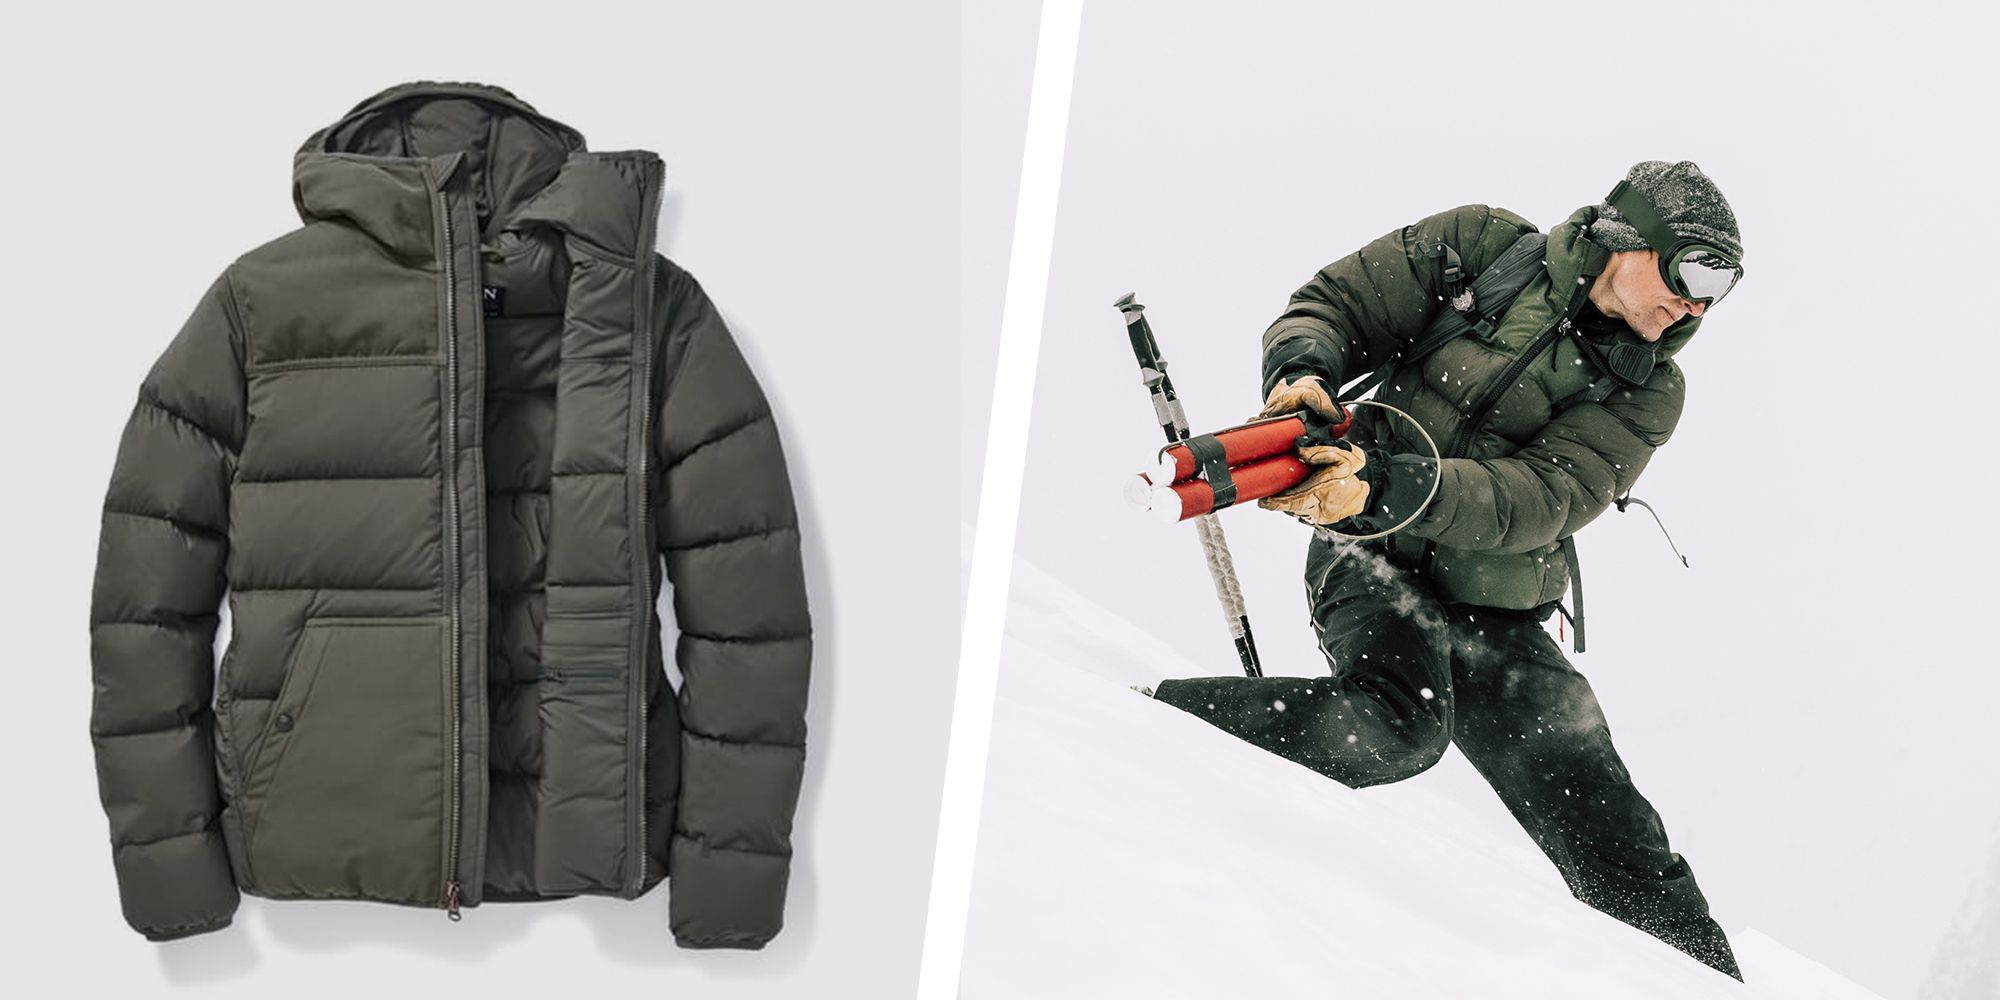 Huckberry Is Having a Massive Sale on Men's Outerwear Today